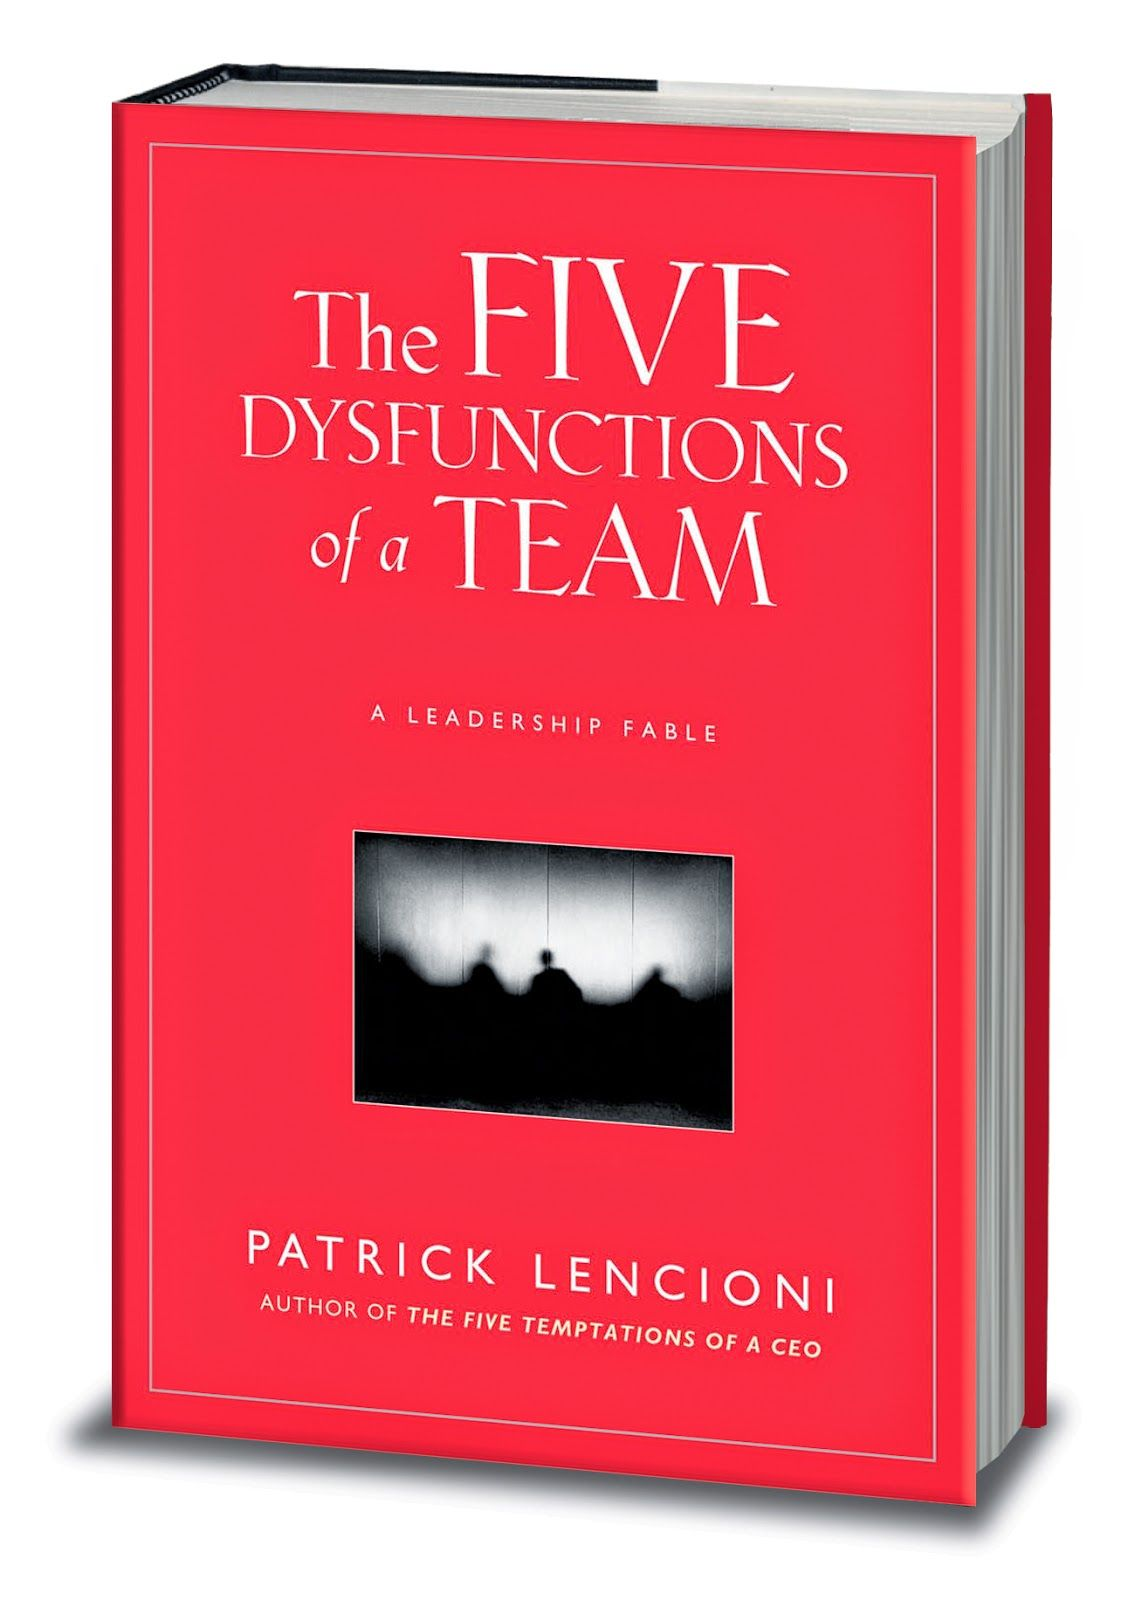 Five Behaviors Of A Cohesive Teamessment Training Program Based On Patrick Lencionis Five Dysfunctions Of A Team